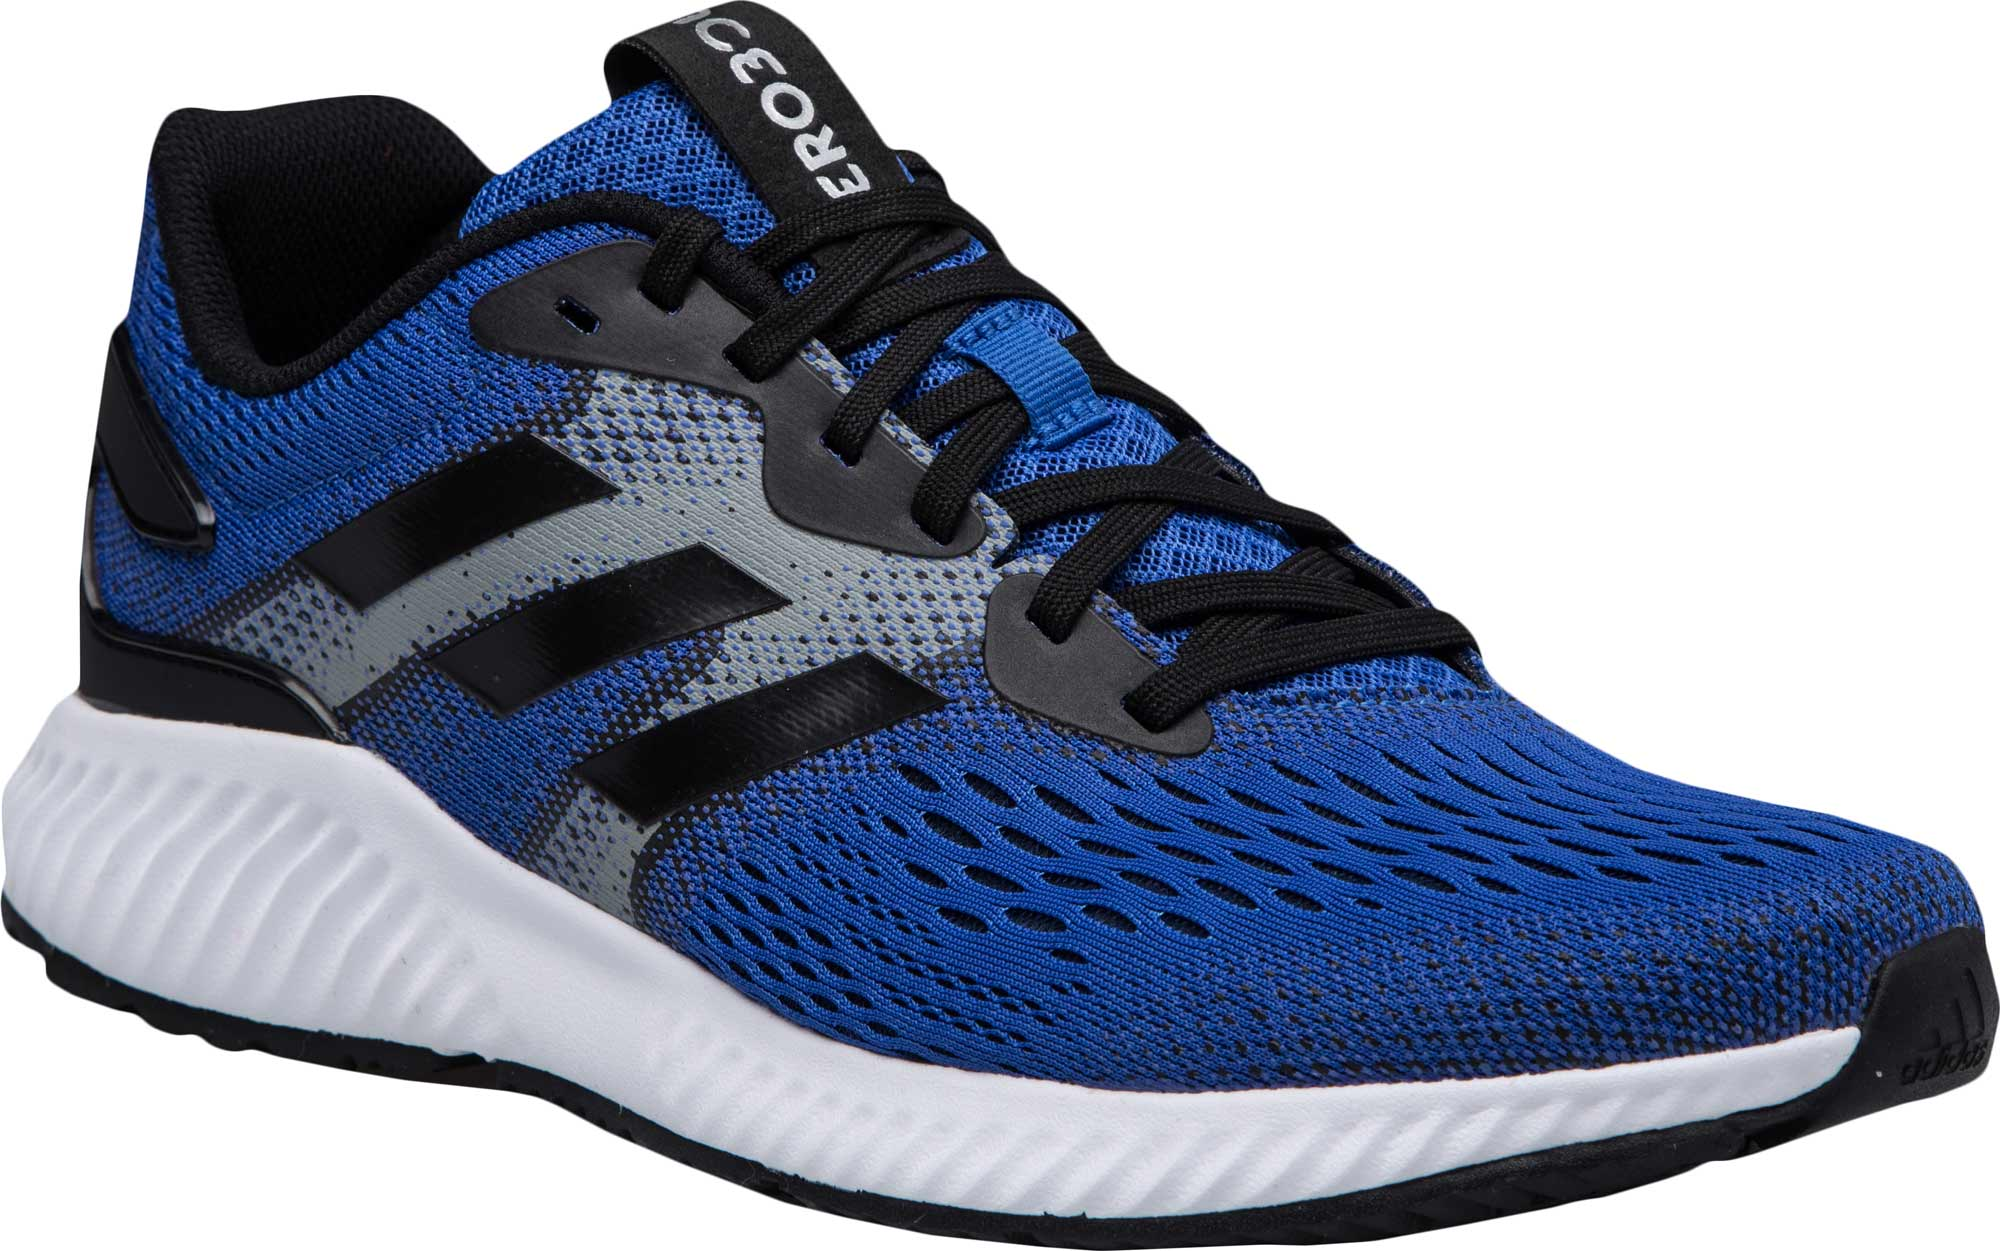 934d8ddd7913d1 Cheap Adidas Crazy Explosive Boost On Sale Shoes Nike Store